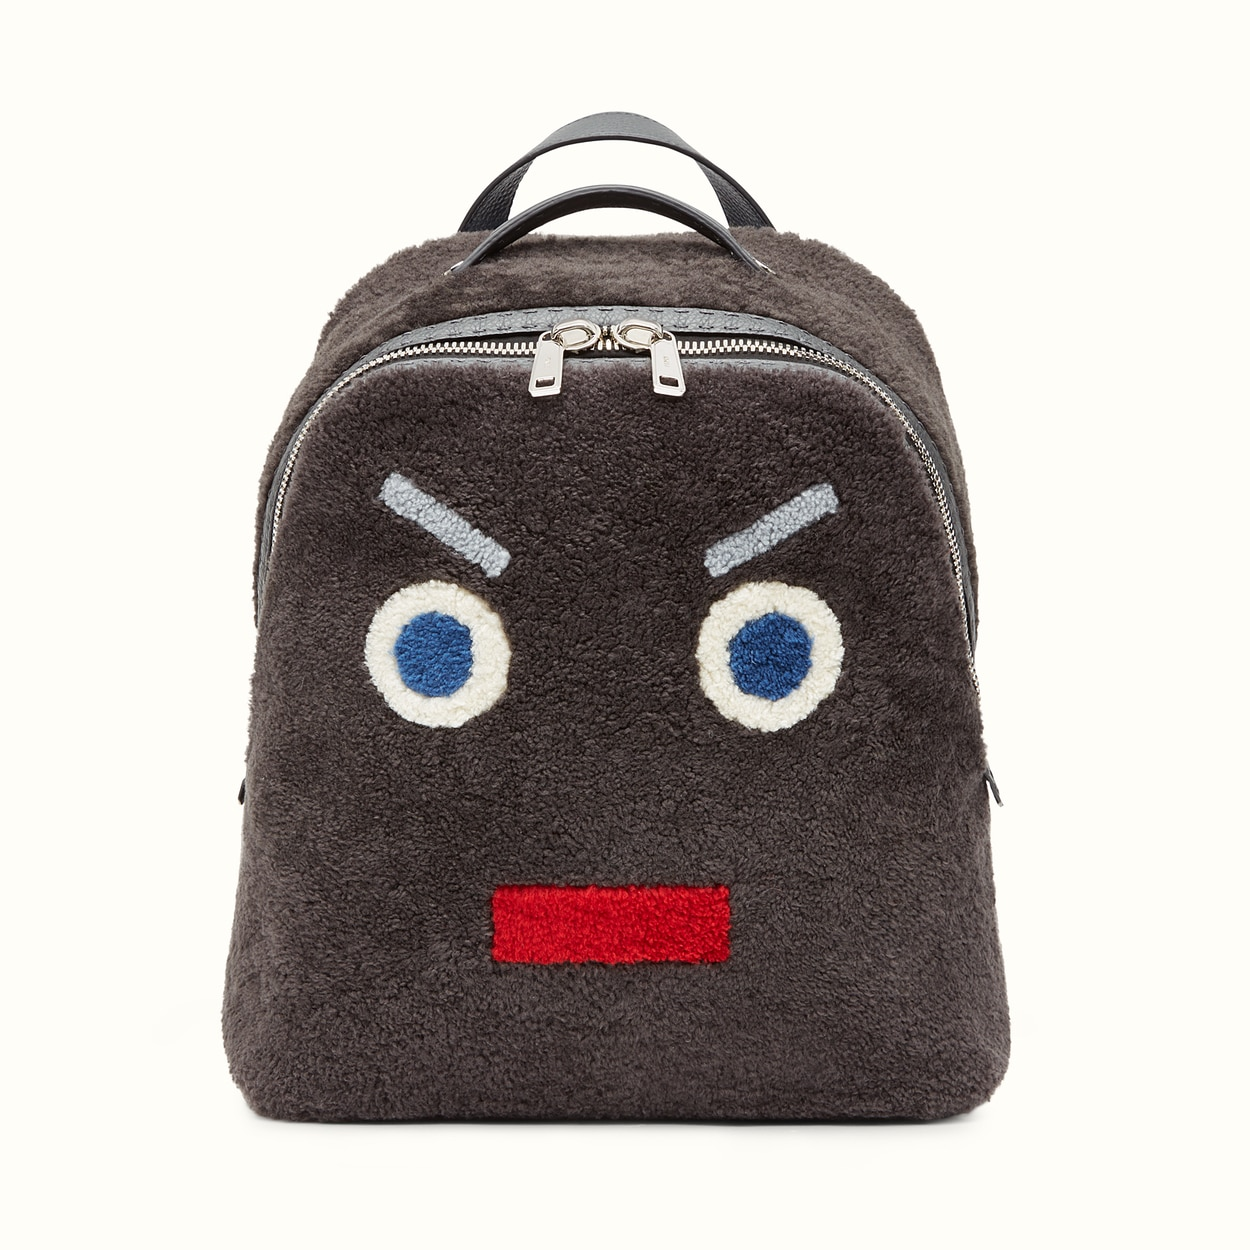 6a3d9b6ff0 Fendi Faces Backpack as Seen on Kylie Jenner Fall Winter 2016 ...